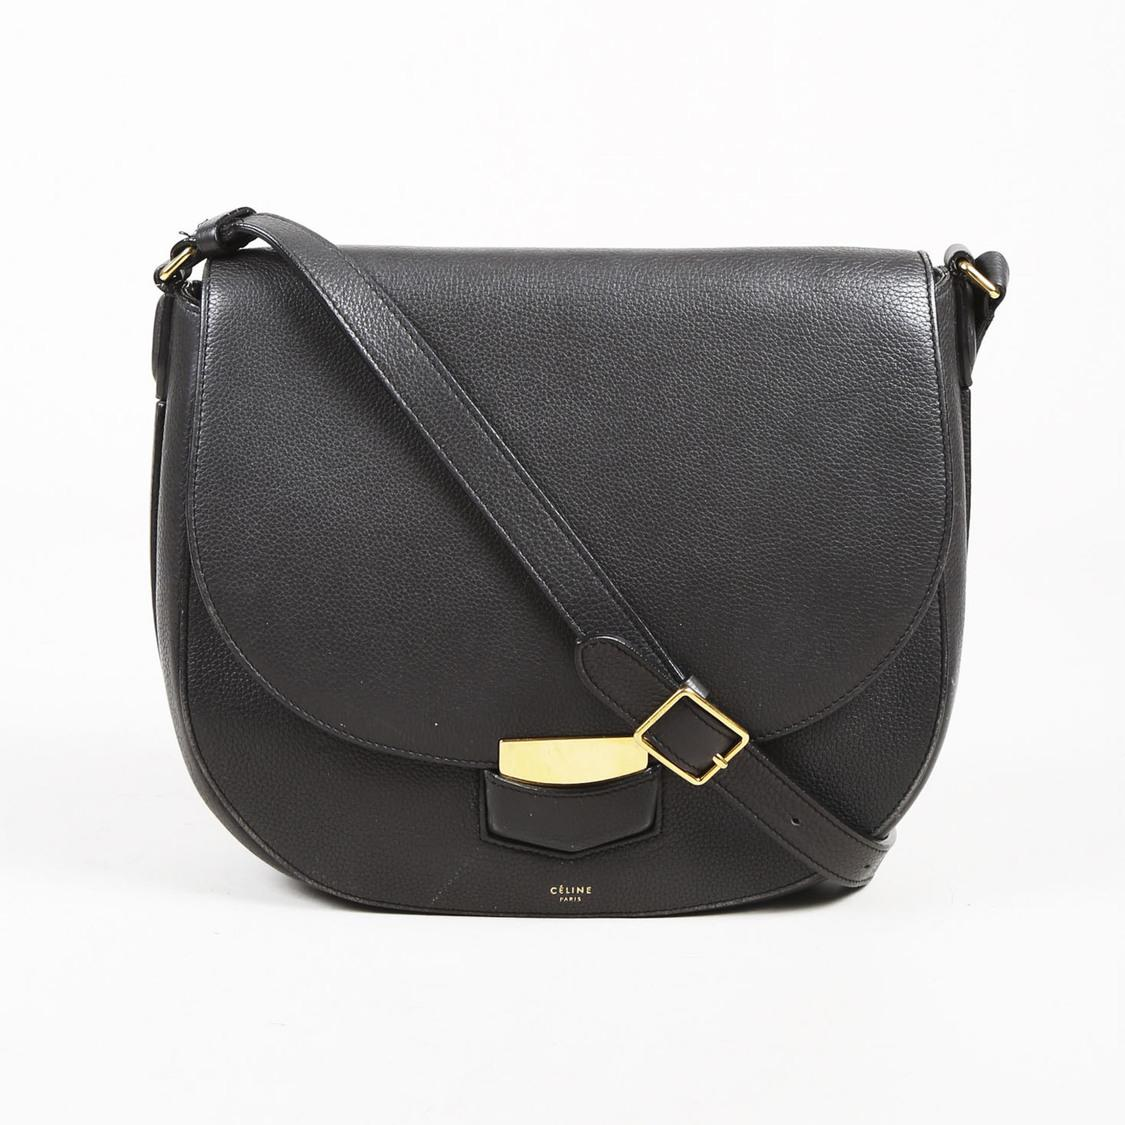 953db8ebef97 Céline - Gray Leather